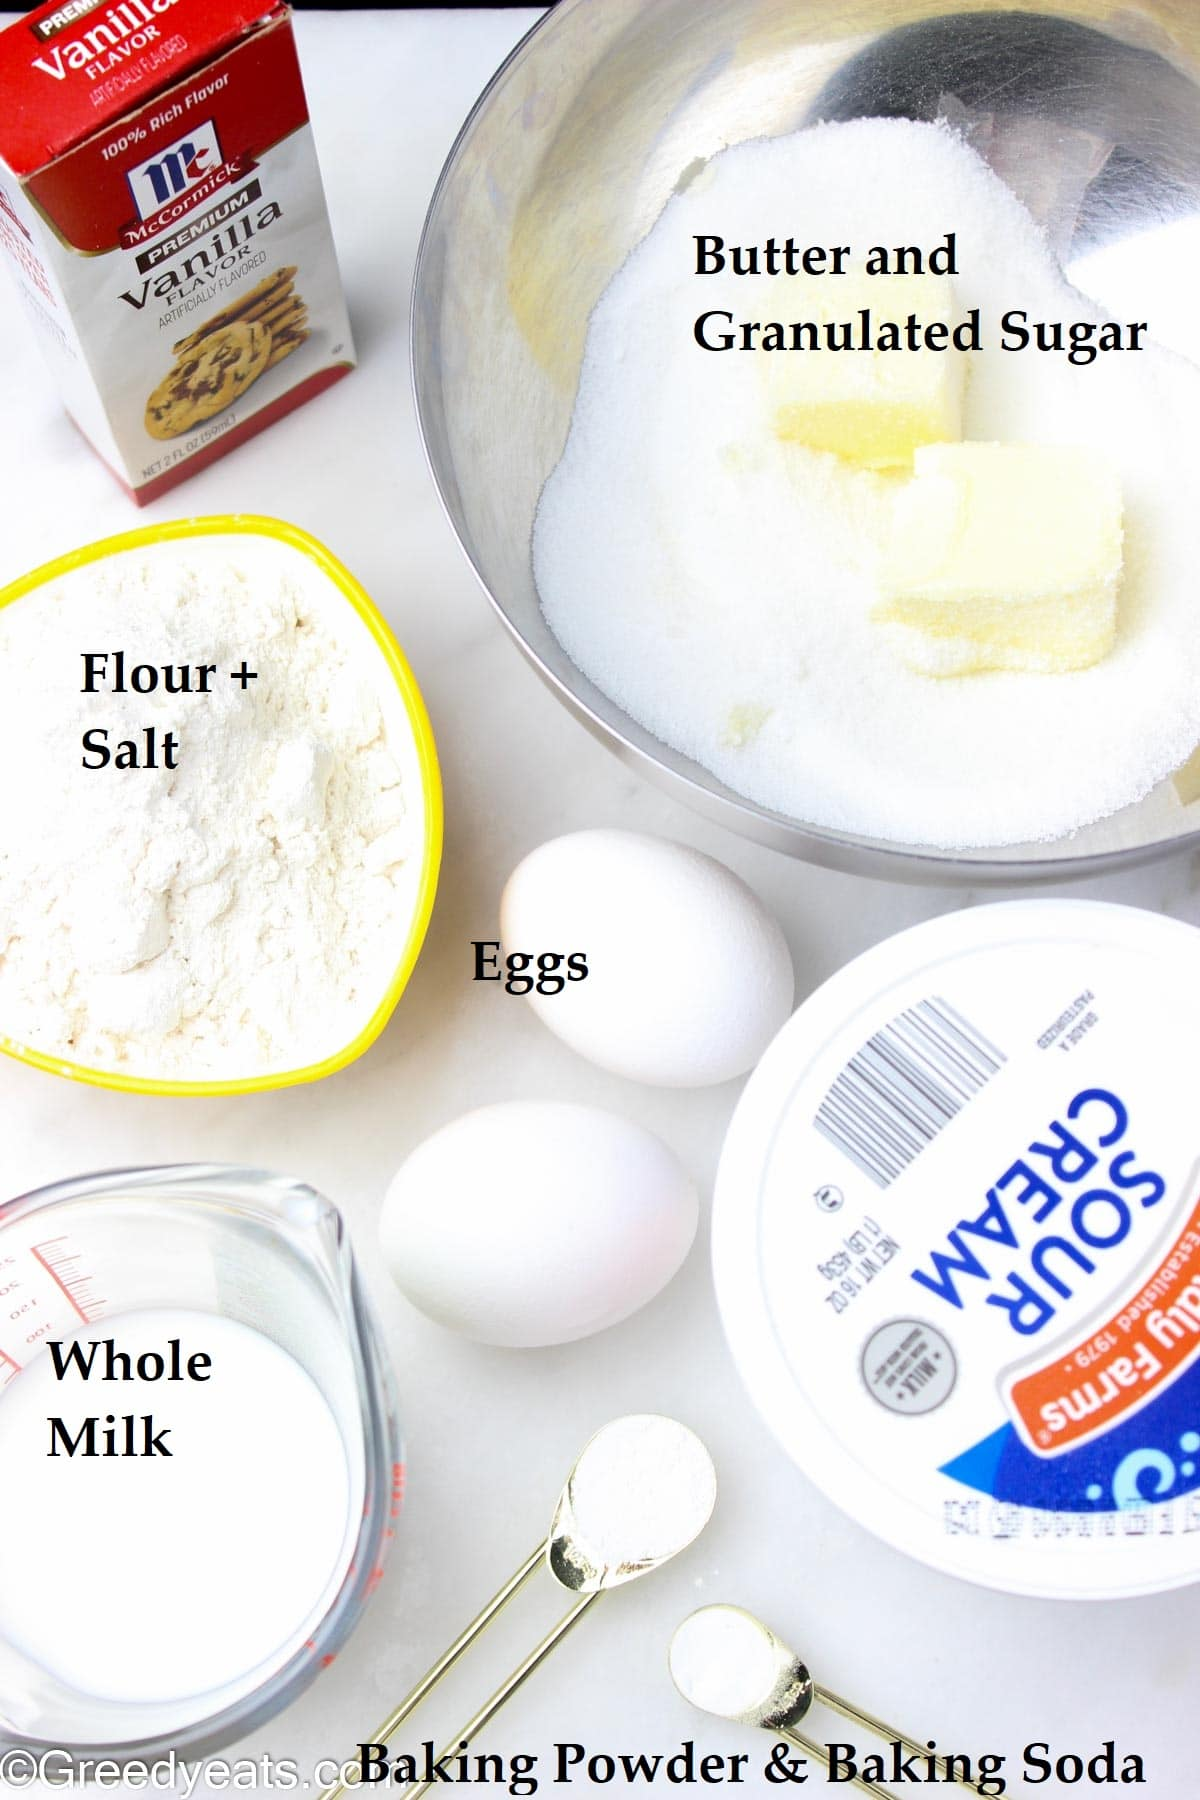 Ingredients like flour, eggs, butter, sour cream, mlik and vanilla to make homemade cake.